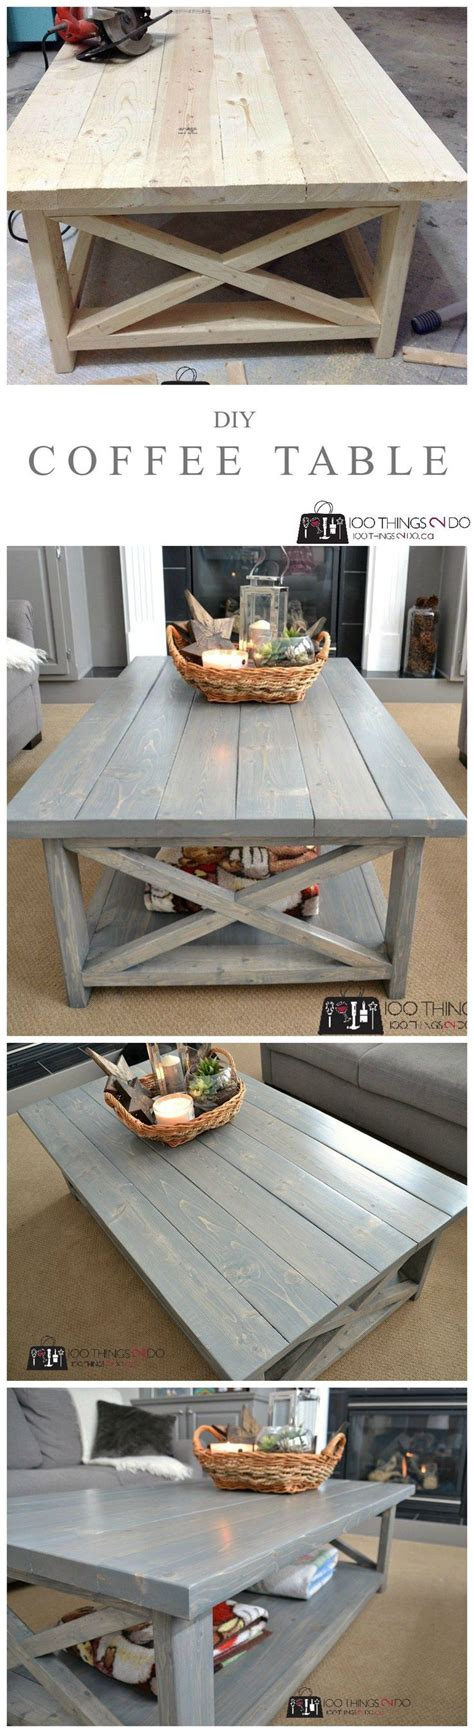 diy rustic coffee table ideas best 25 rustic living room furniture ideas on